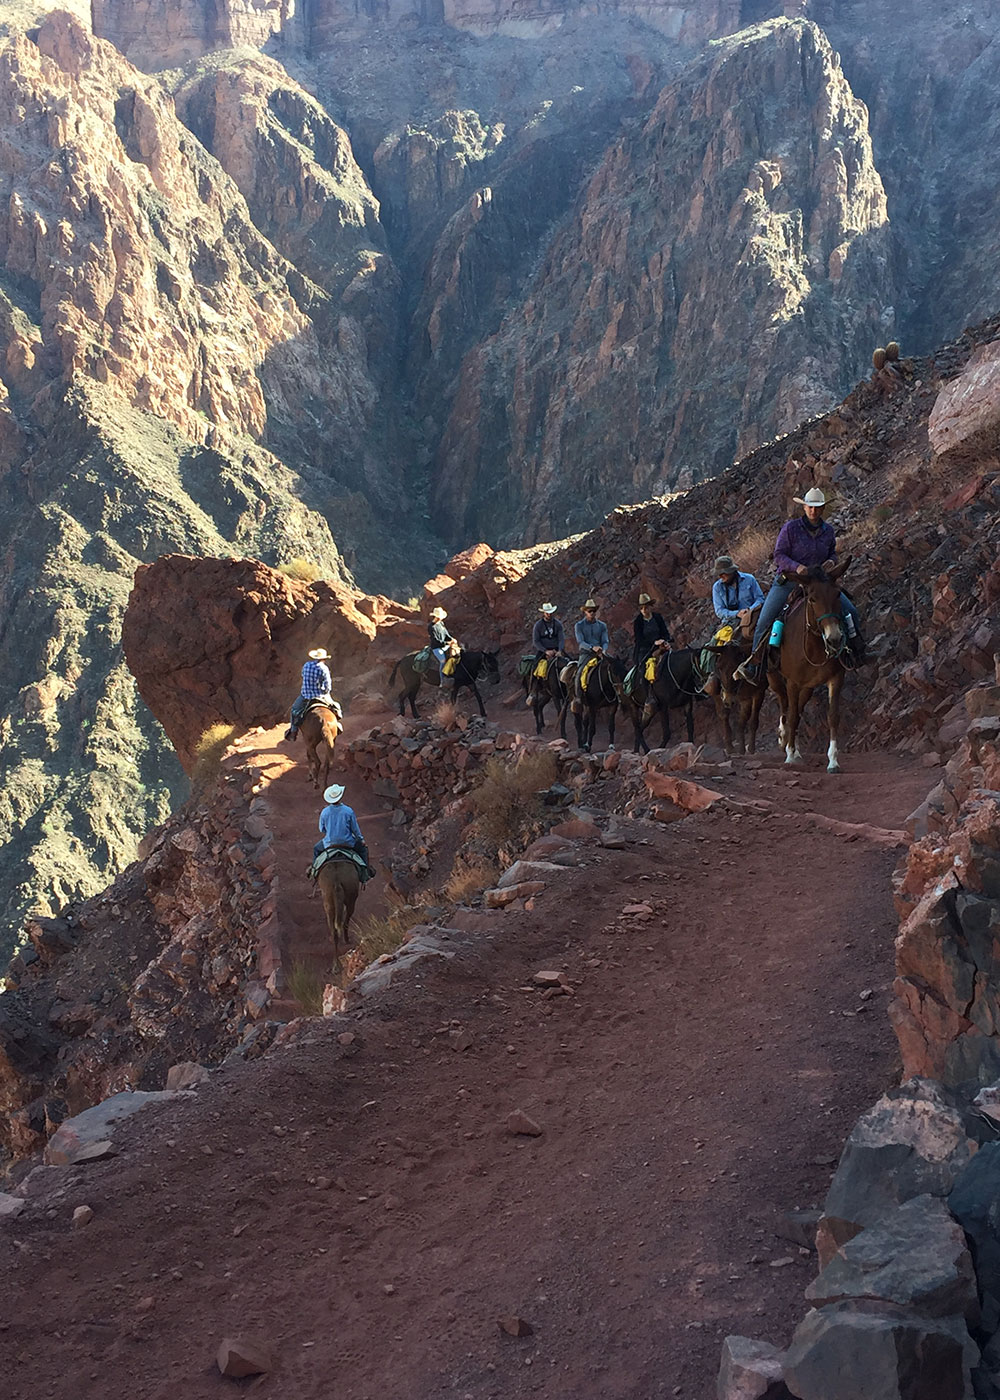 mules transporting some tourists on the grand canyon's north rim | thelovedesigneldife.com #thegrandcanyon #rimtorim